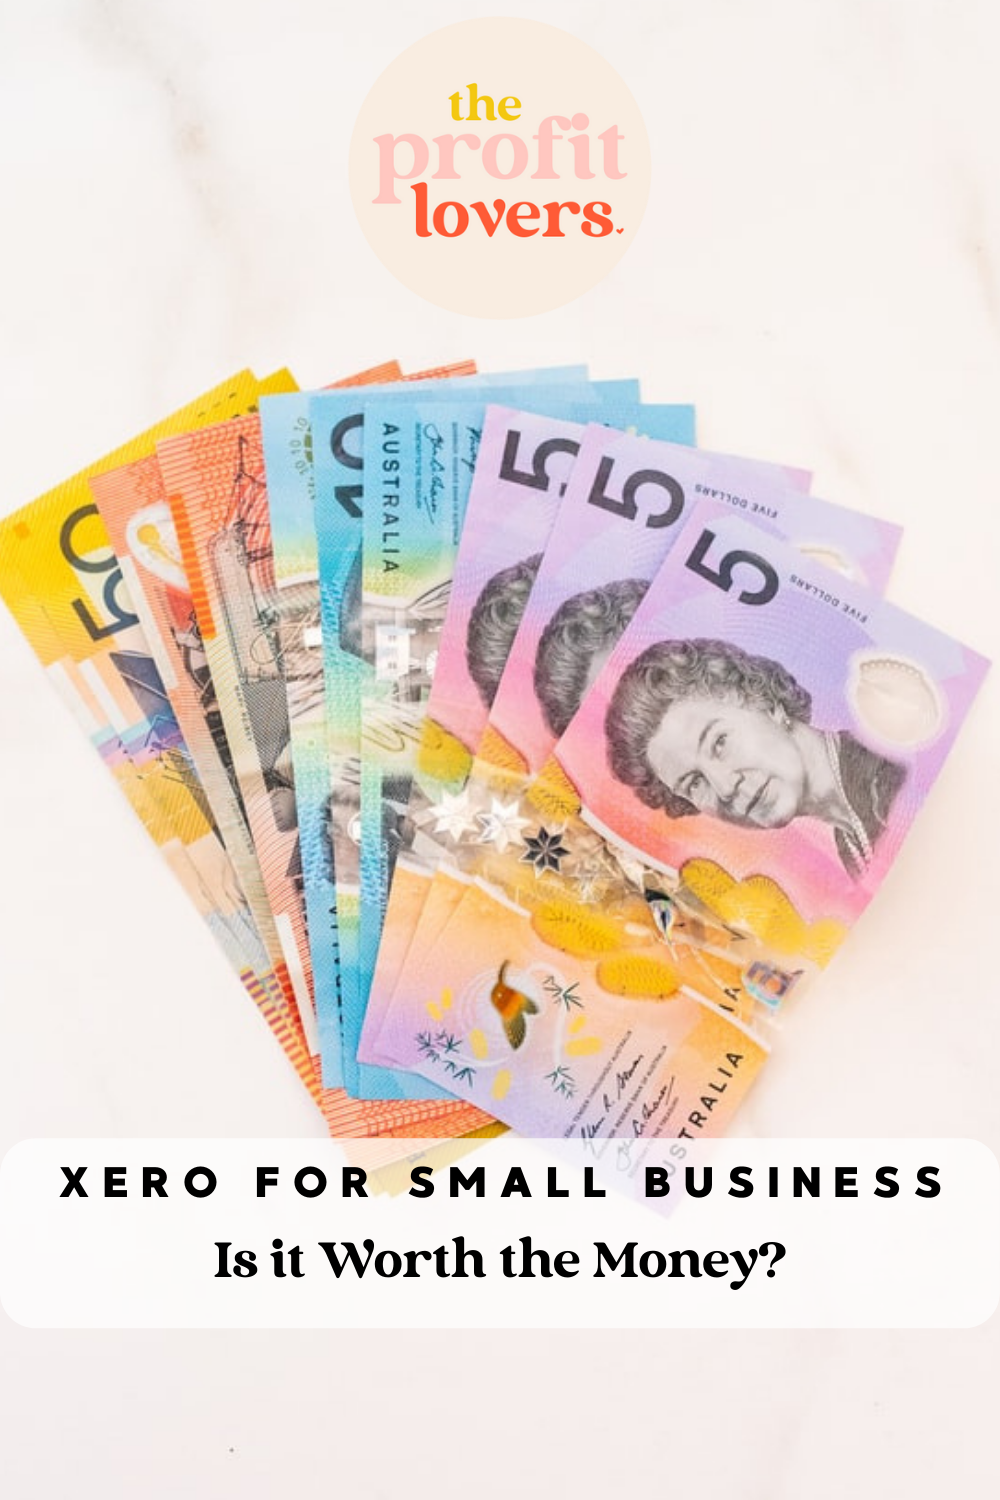 xero for small business is it worth the money